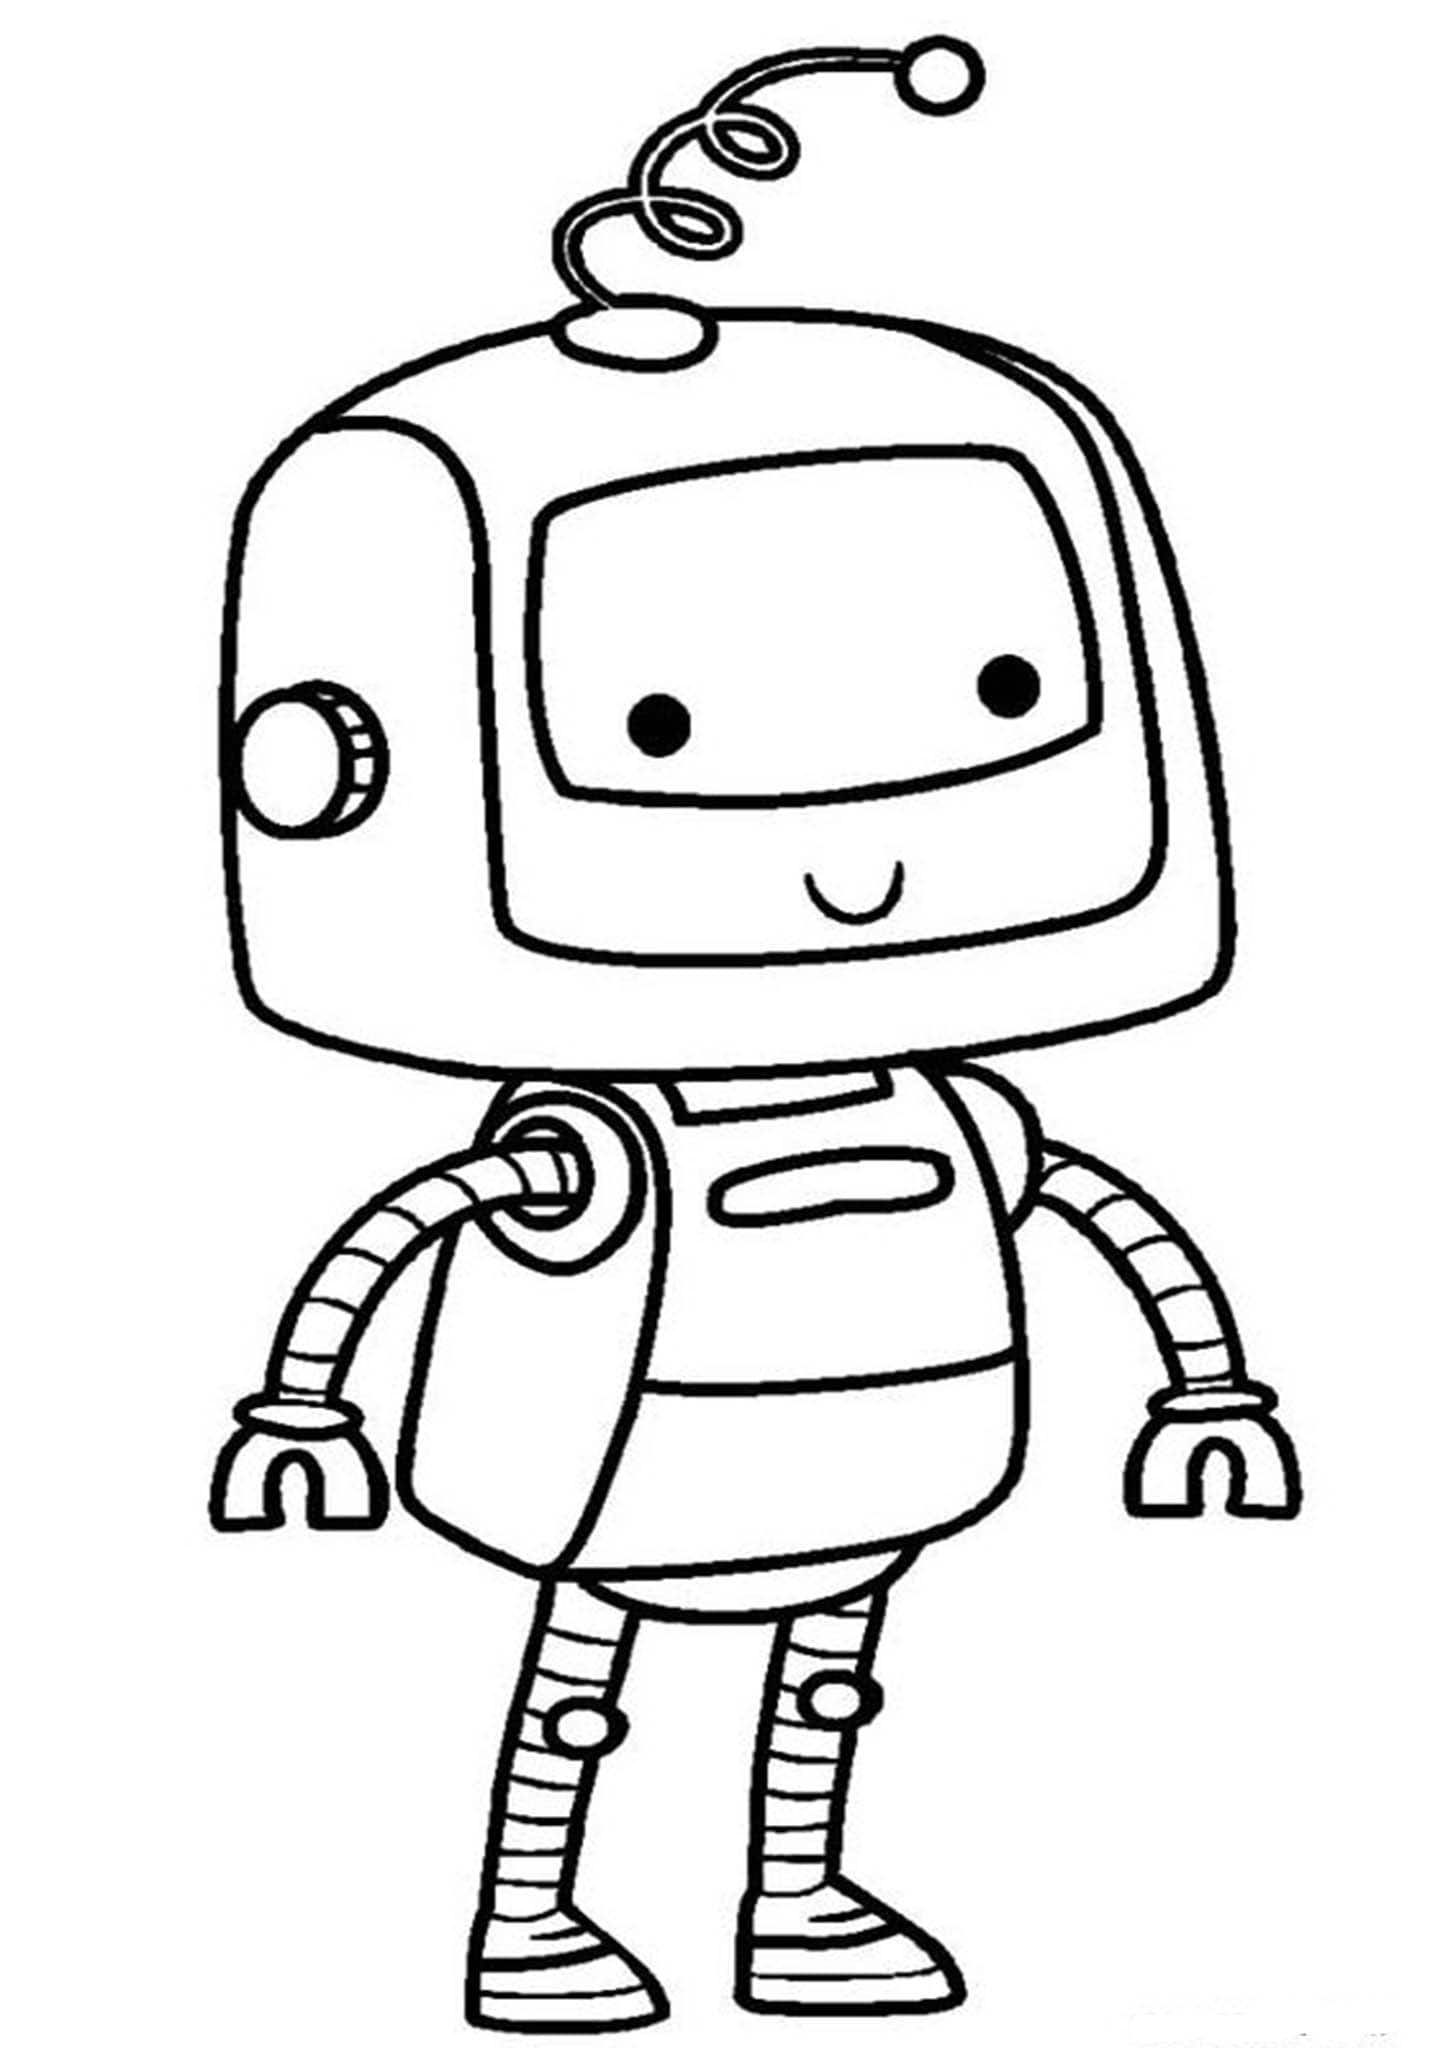 Cool Robot Coloring Pages To Print For Kids Free Coloring Sheets Coloring Pages For Boys Dinosaur Coloring Pages Cartoon Coloring Pages